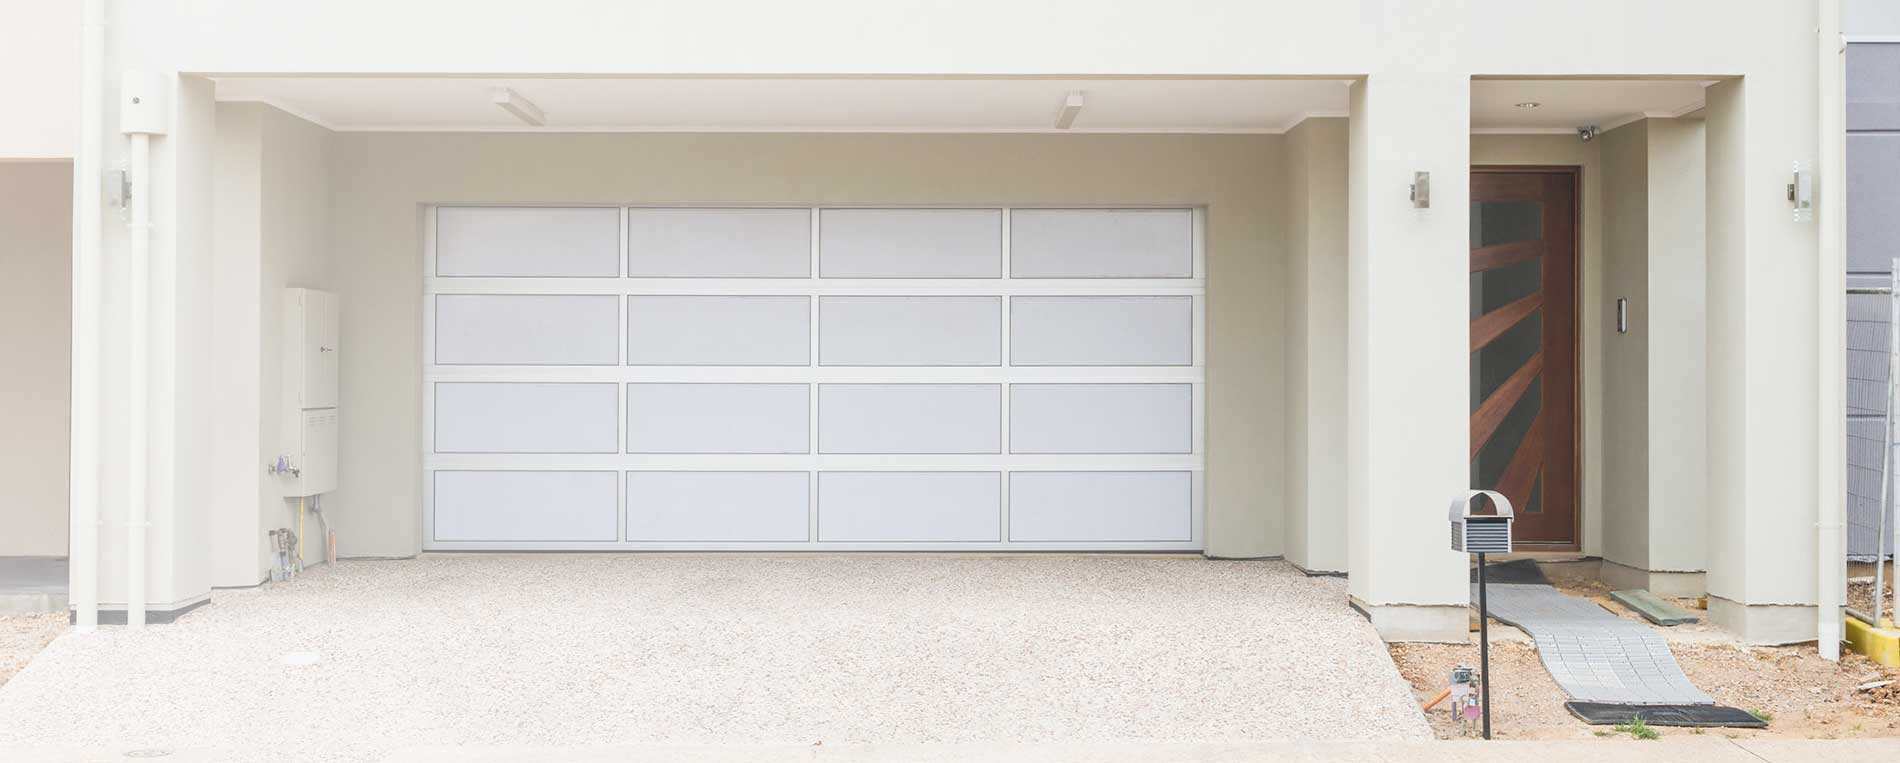 3 Common Garage Door Problems to Look Out For